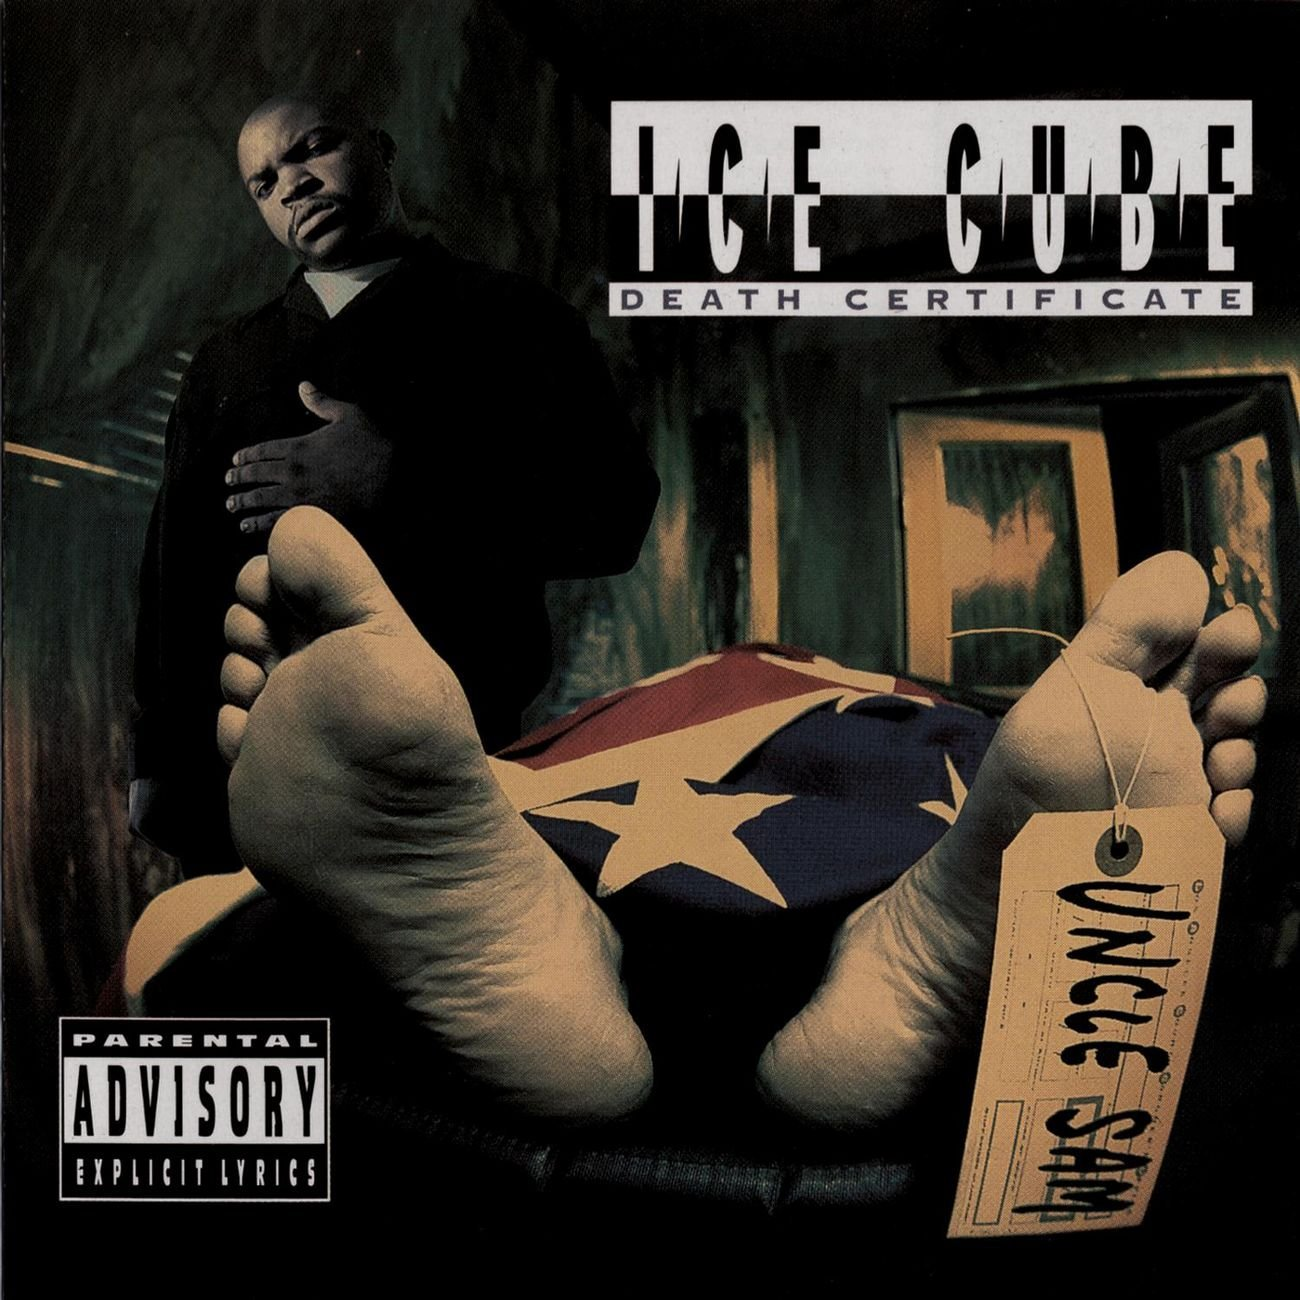 Ice Cube Death Certificate Mr Hipster Album Reviews Music